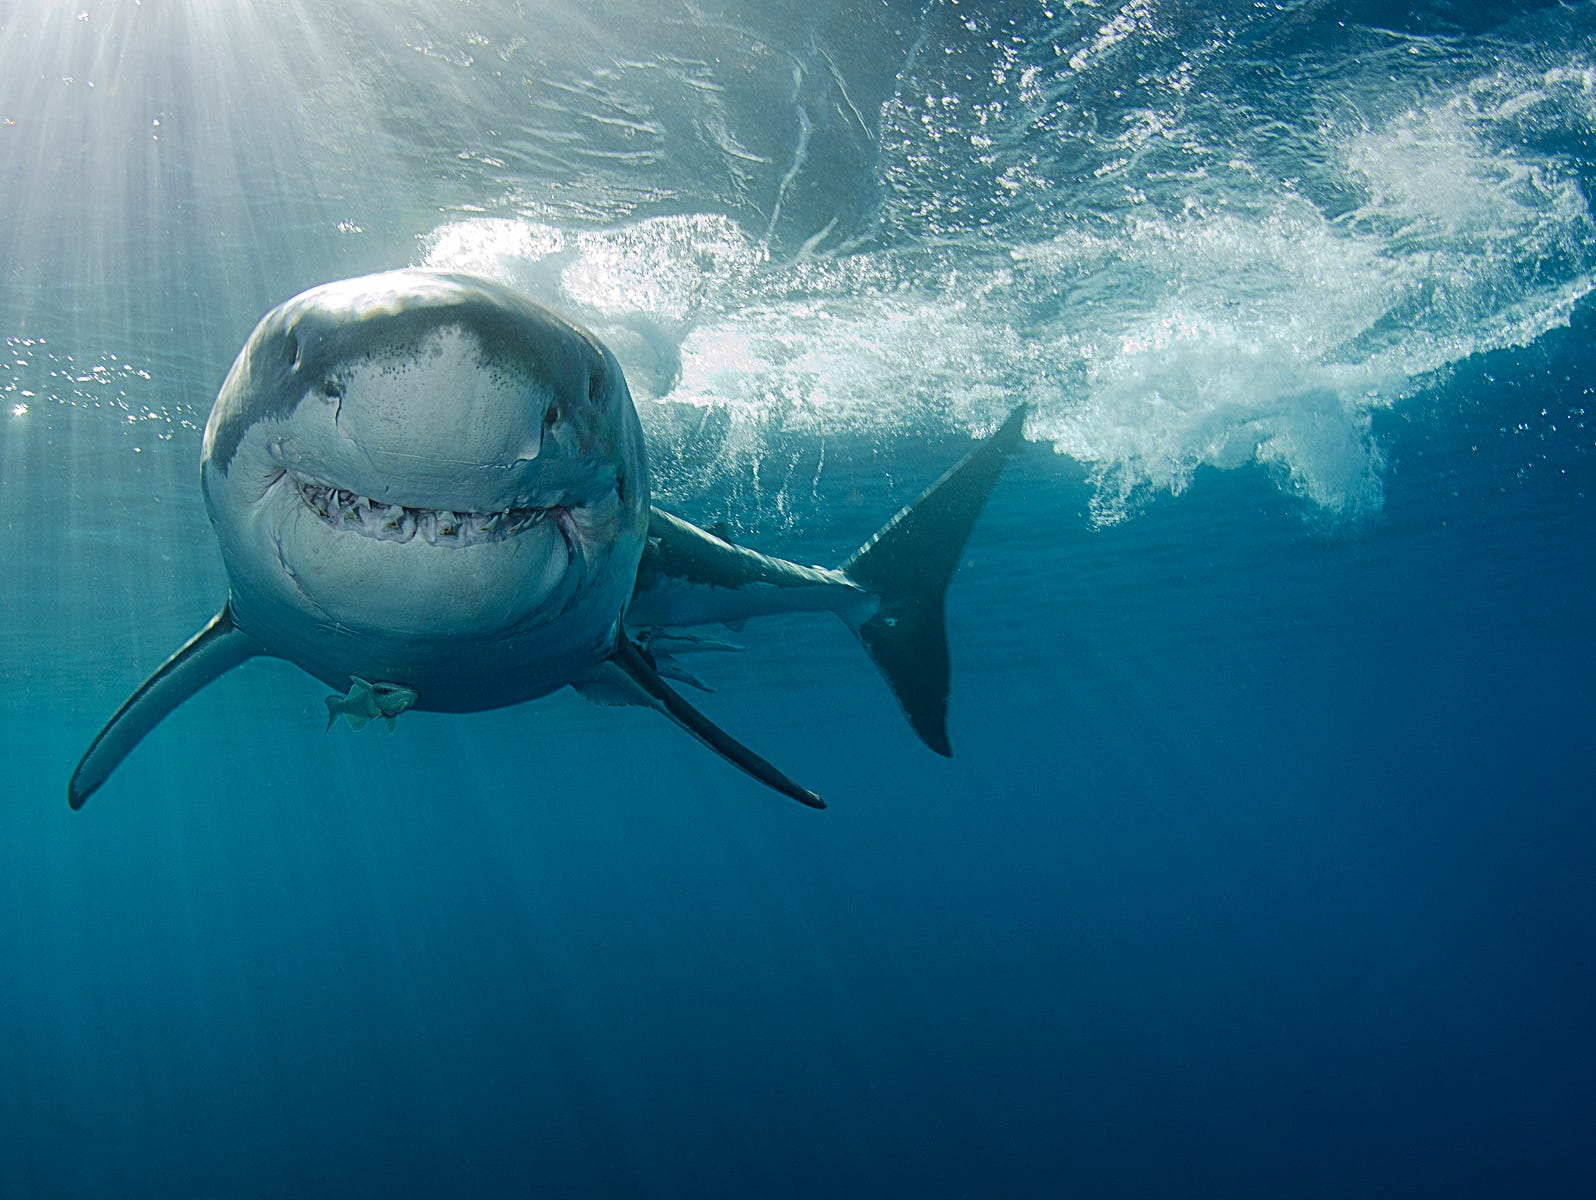 Shark Week starts July 22rd, so take our quiz and show off your knowledge of these ocean predators!